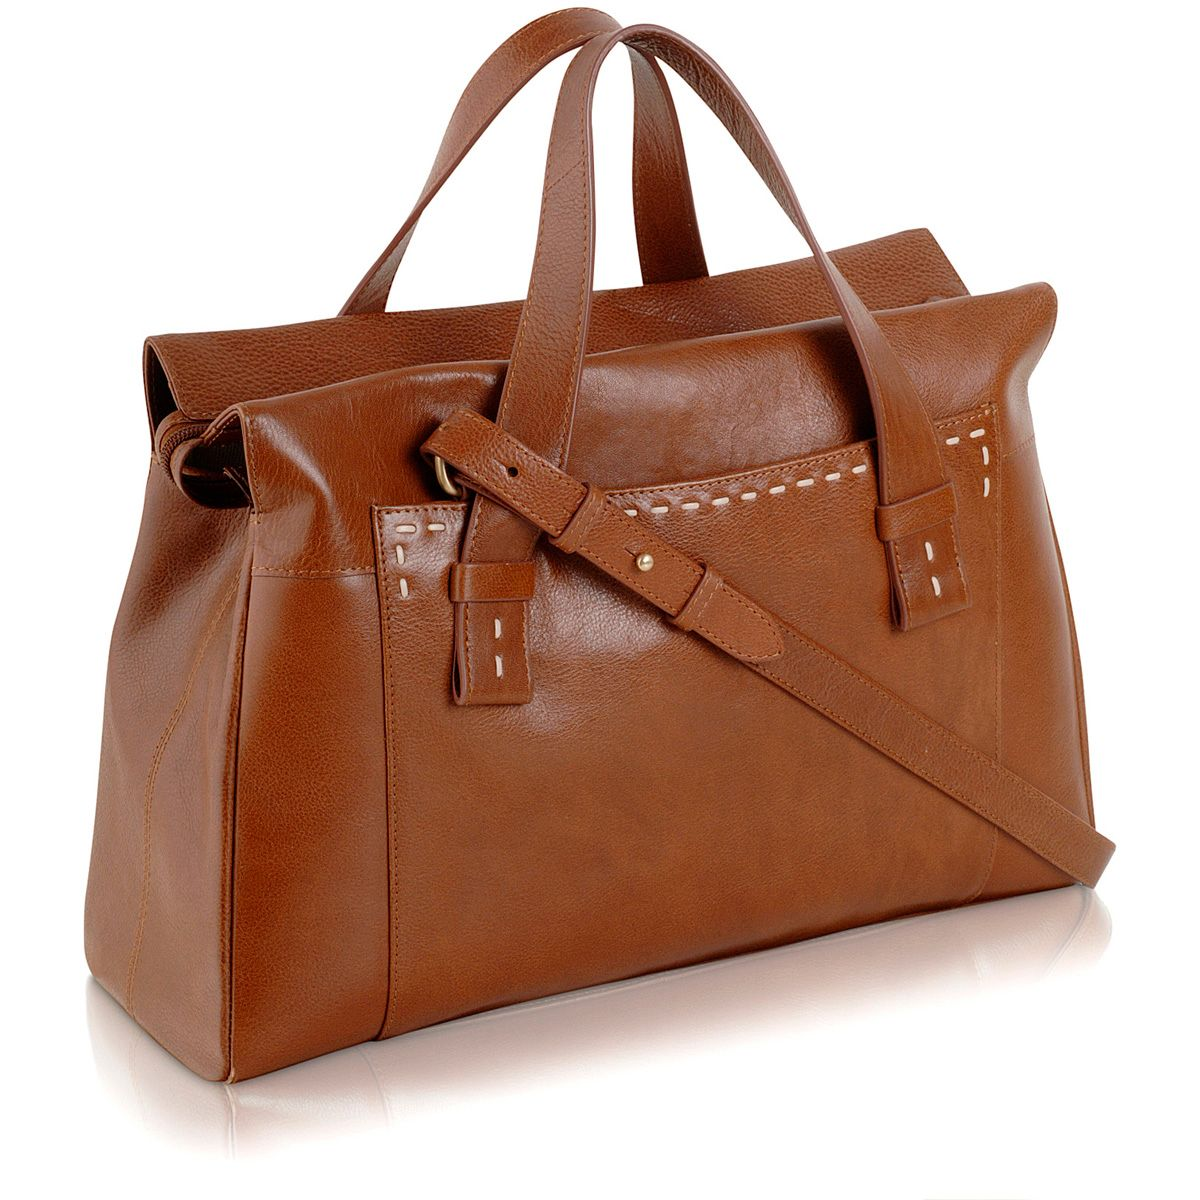 Villiers large tan leather ztop multiway handbag